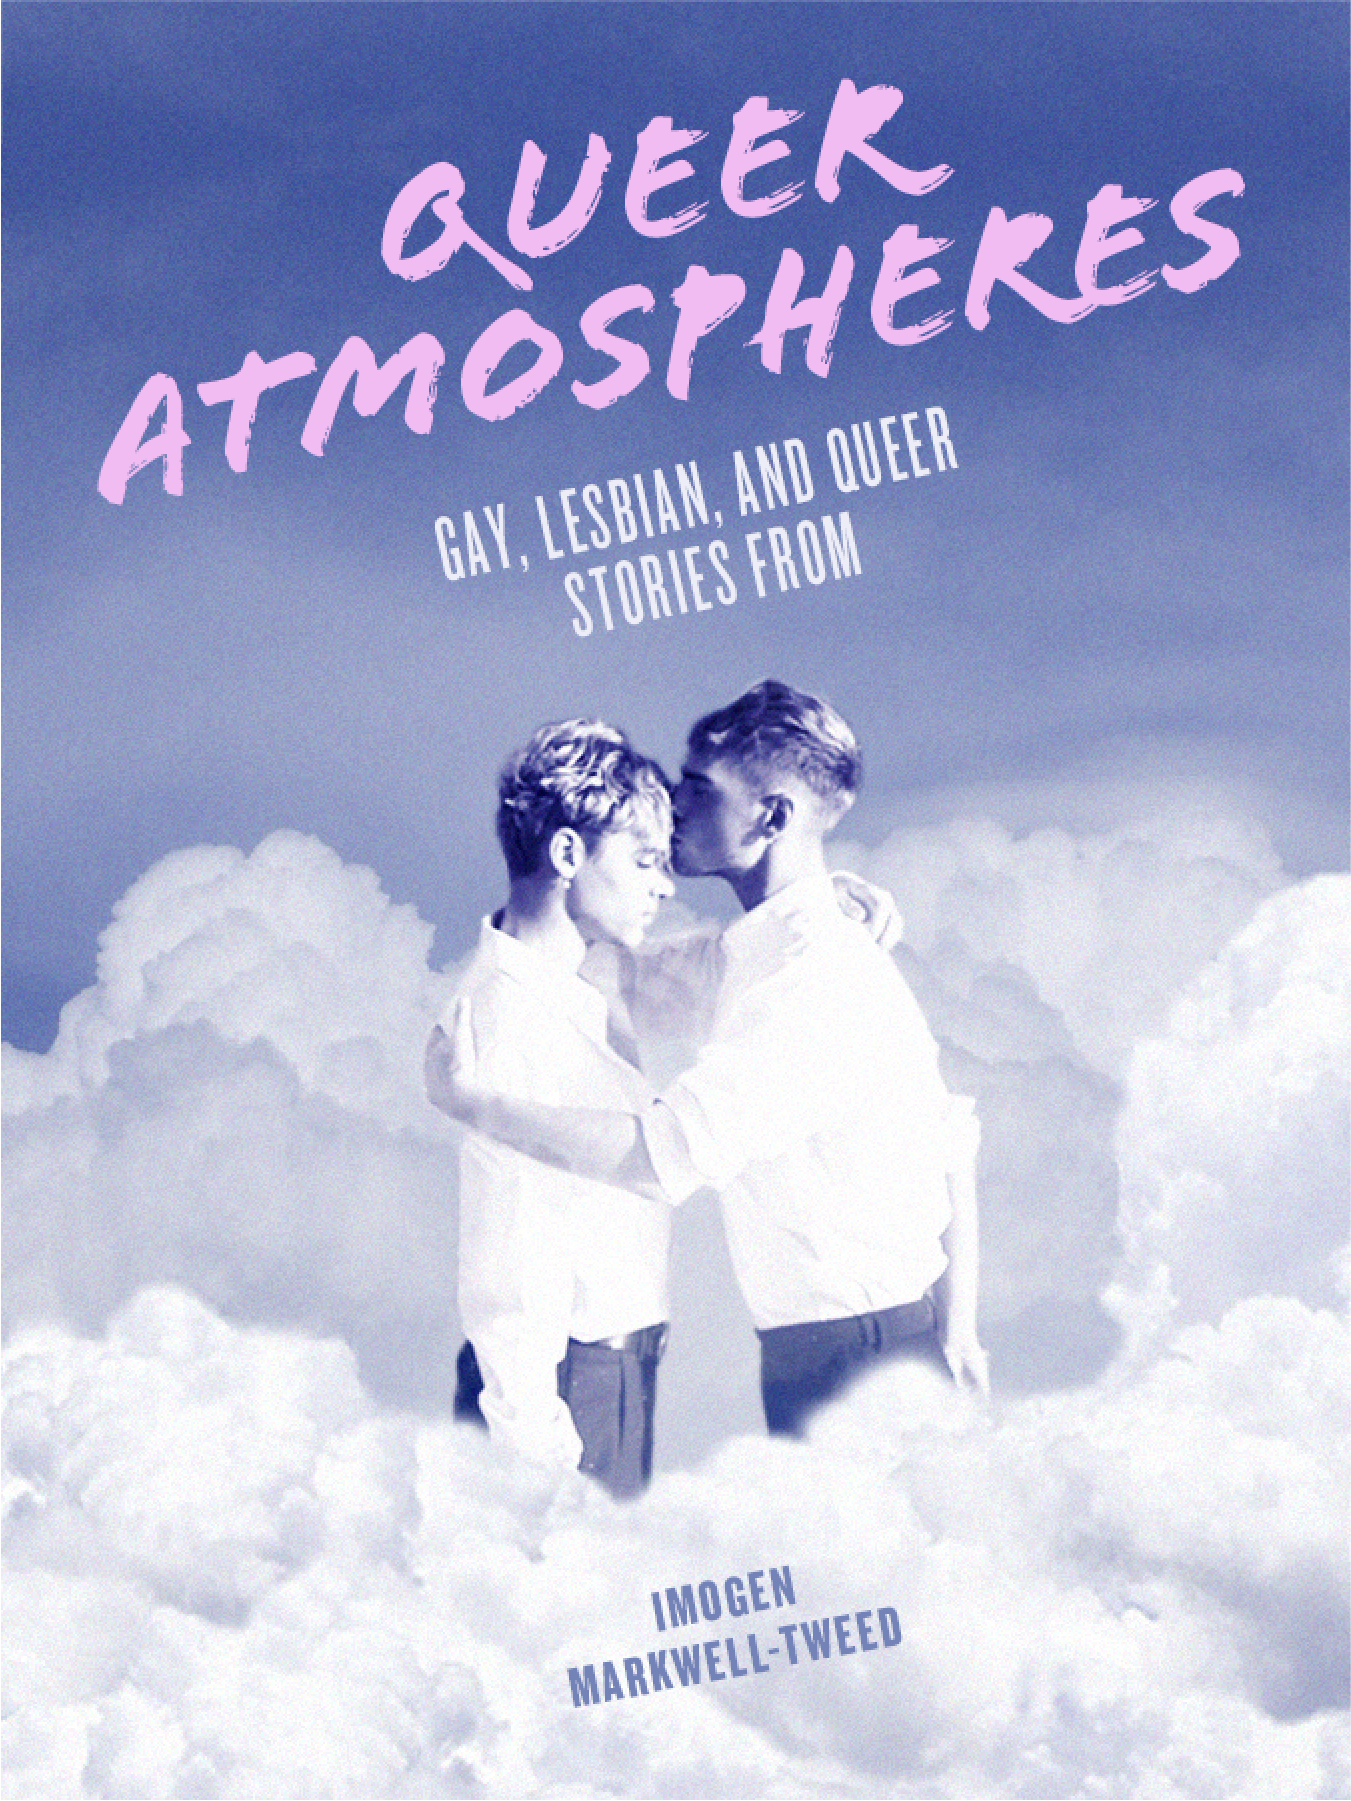 Queer Atmospheres: : Gay, Lesbian and Queer Romance Stories from Imogen Markwell-Tweed